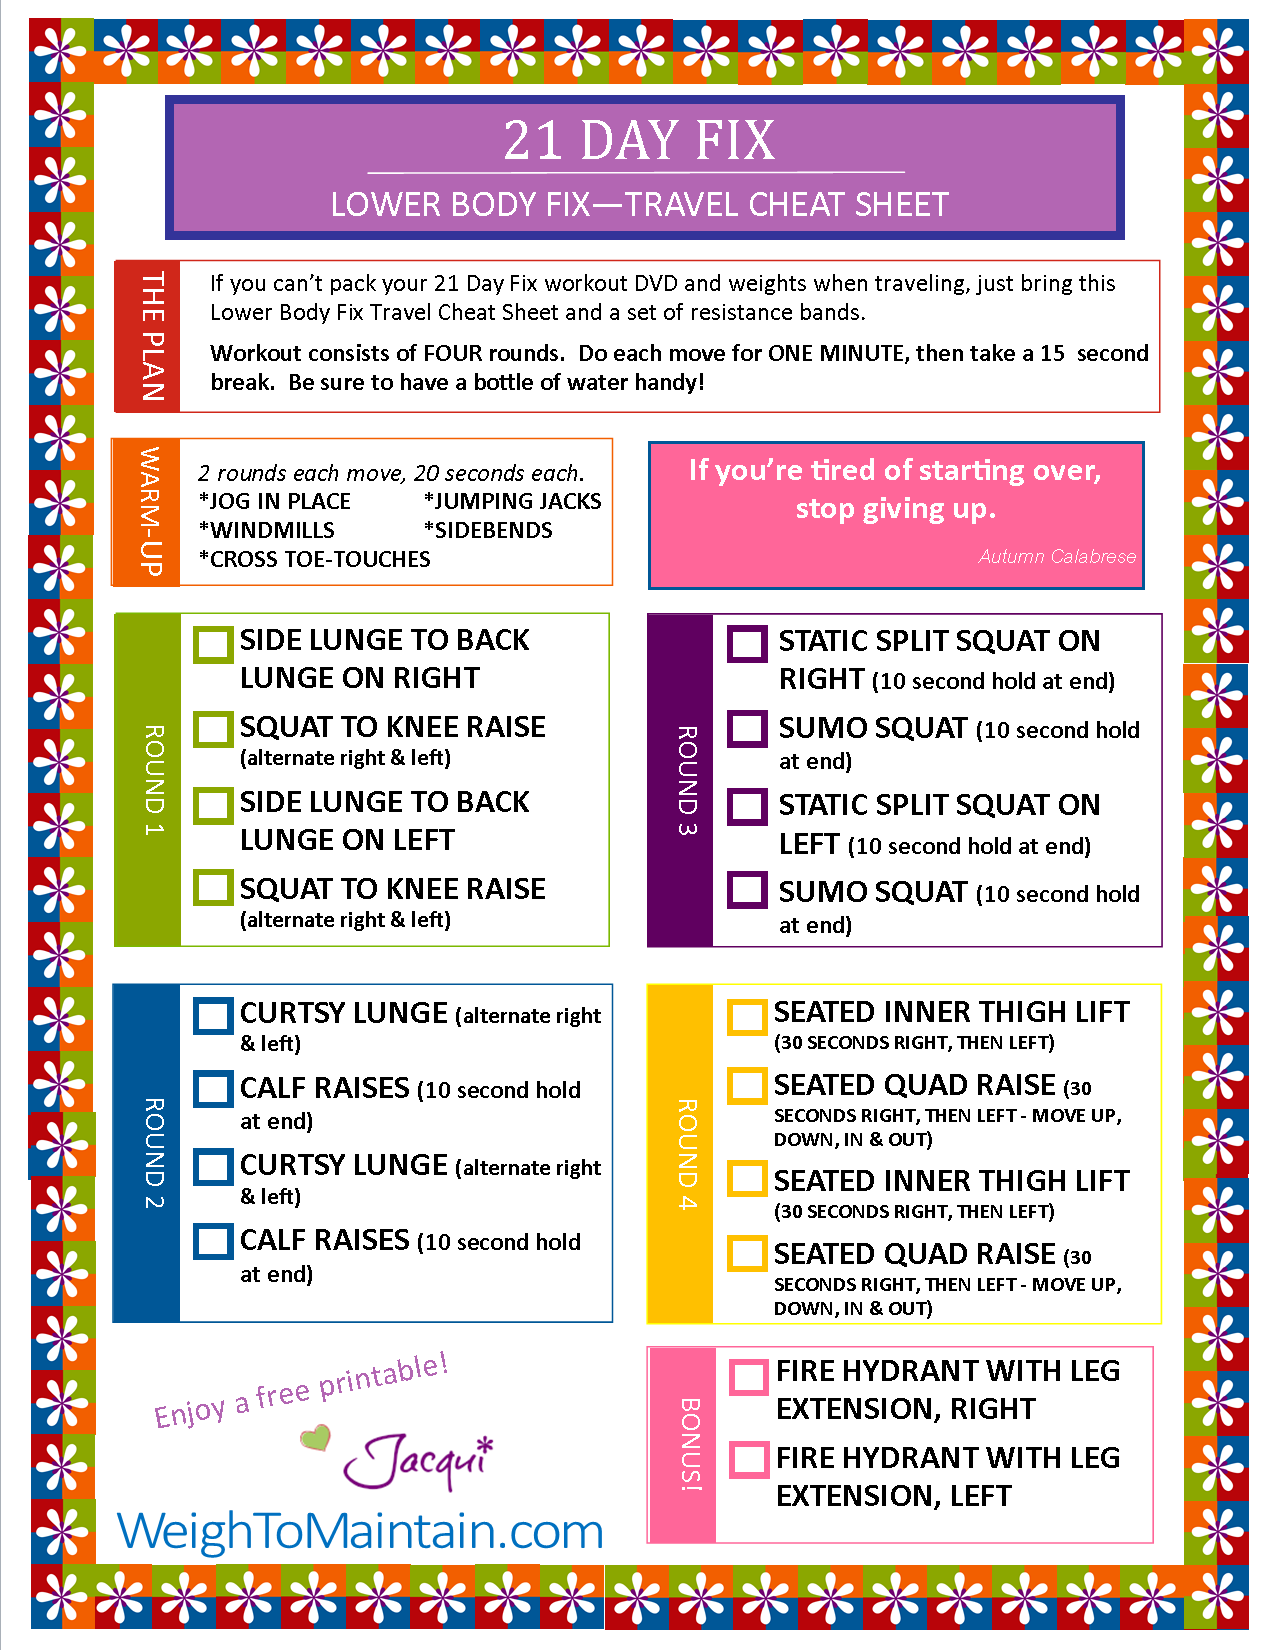 This is a graphic of 21 Day Fix Workout Schedule Printable inside cardio